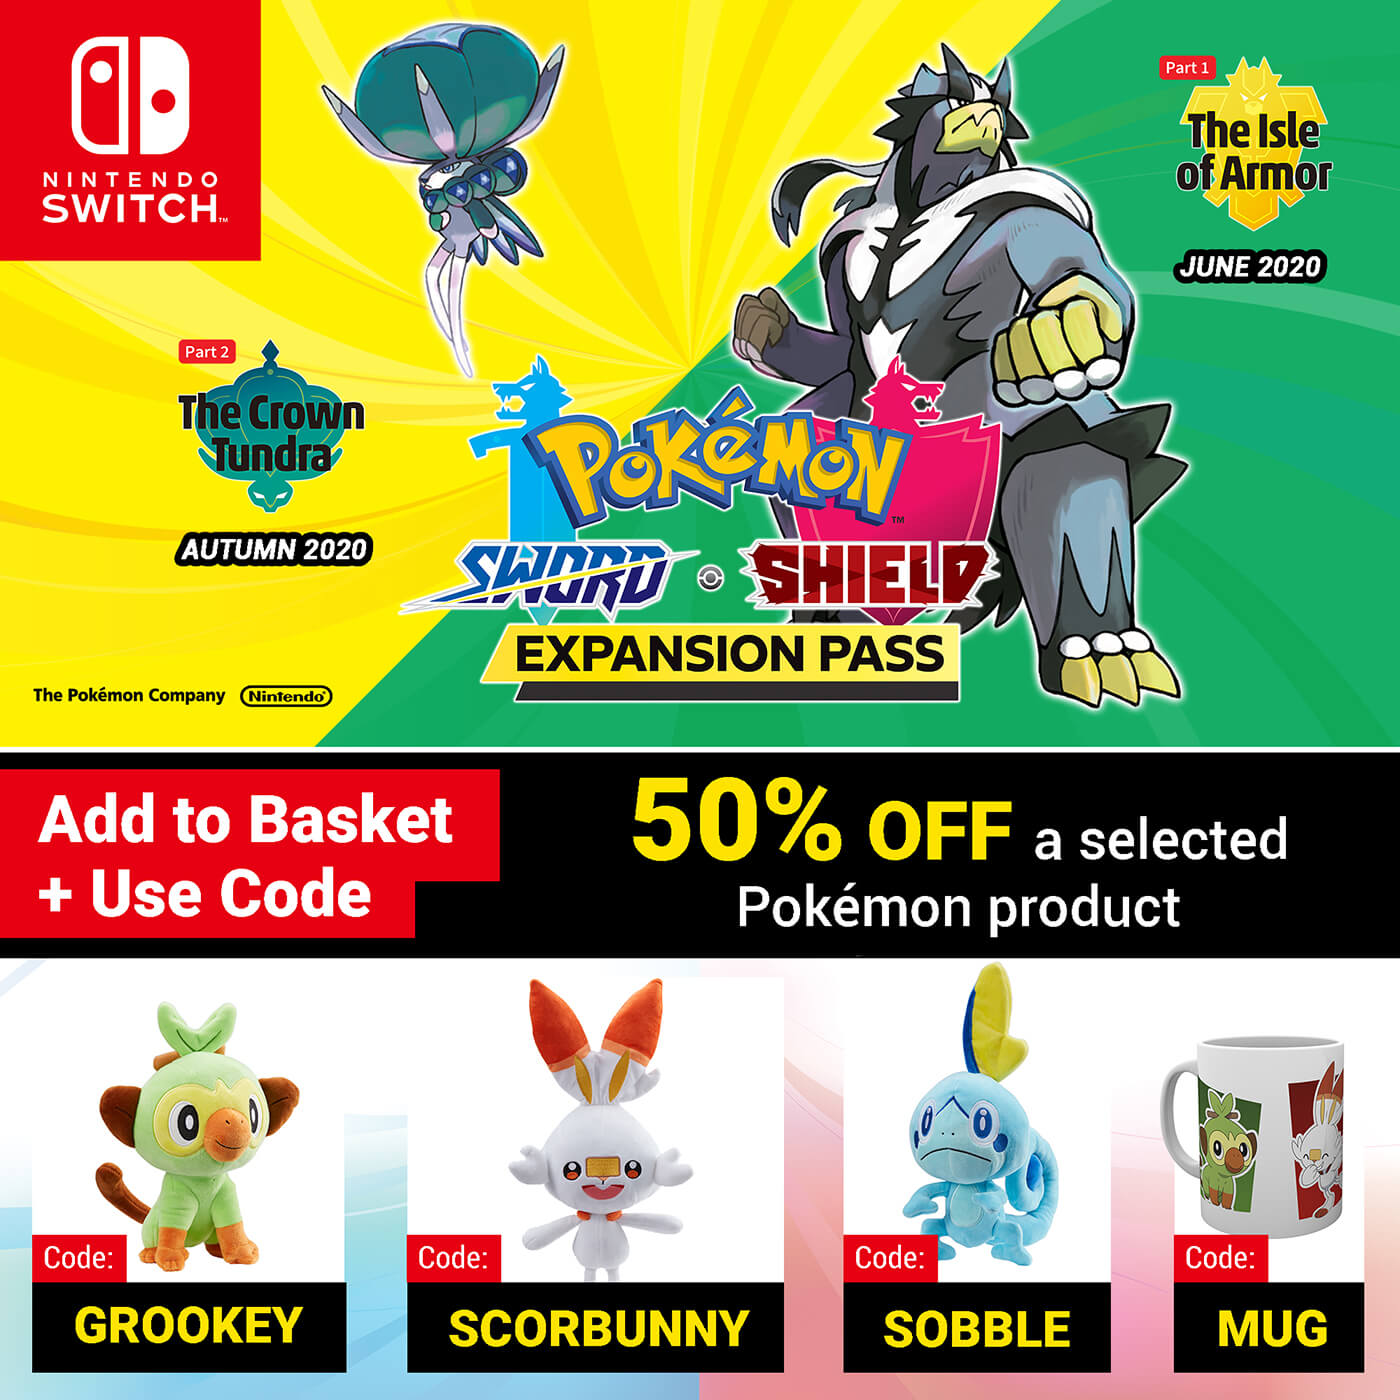 Pokémon Sword and Pokémon Shield Expansion Pass